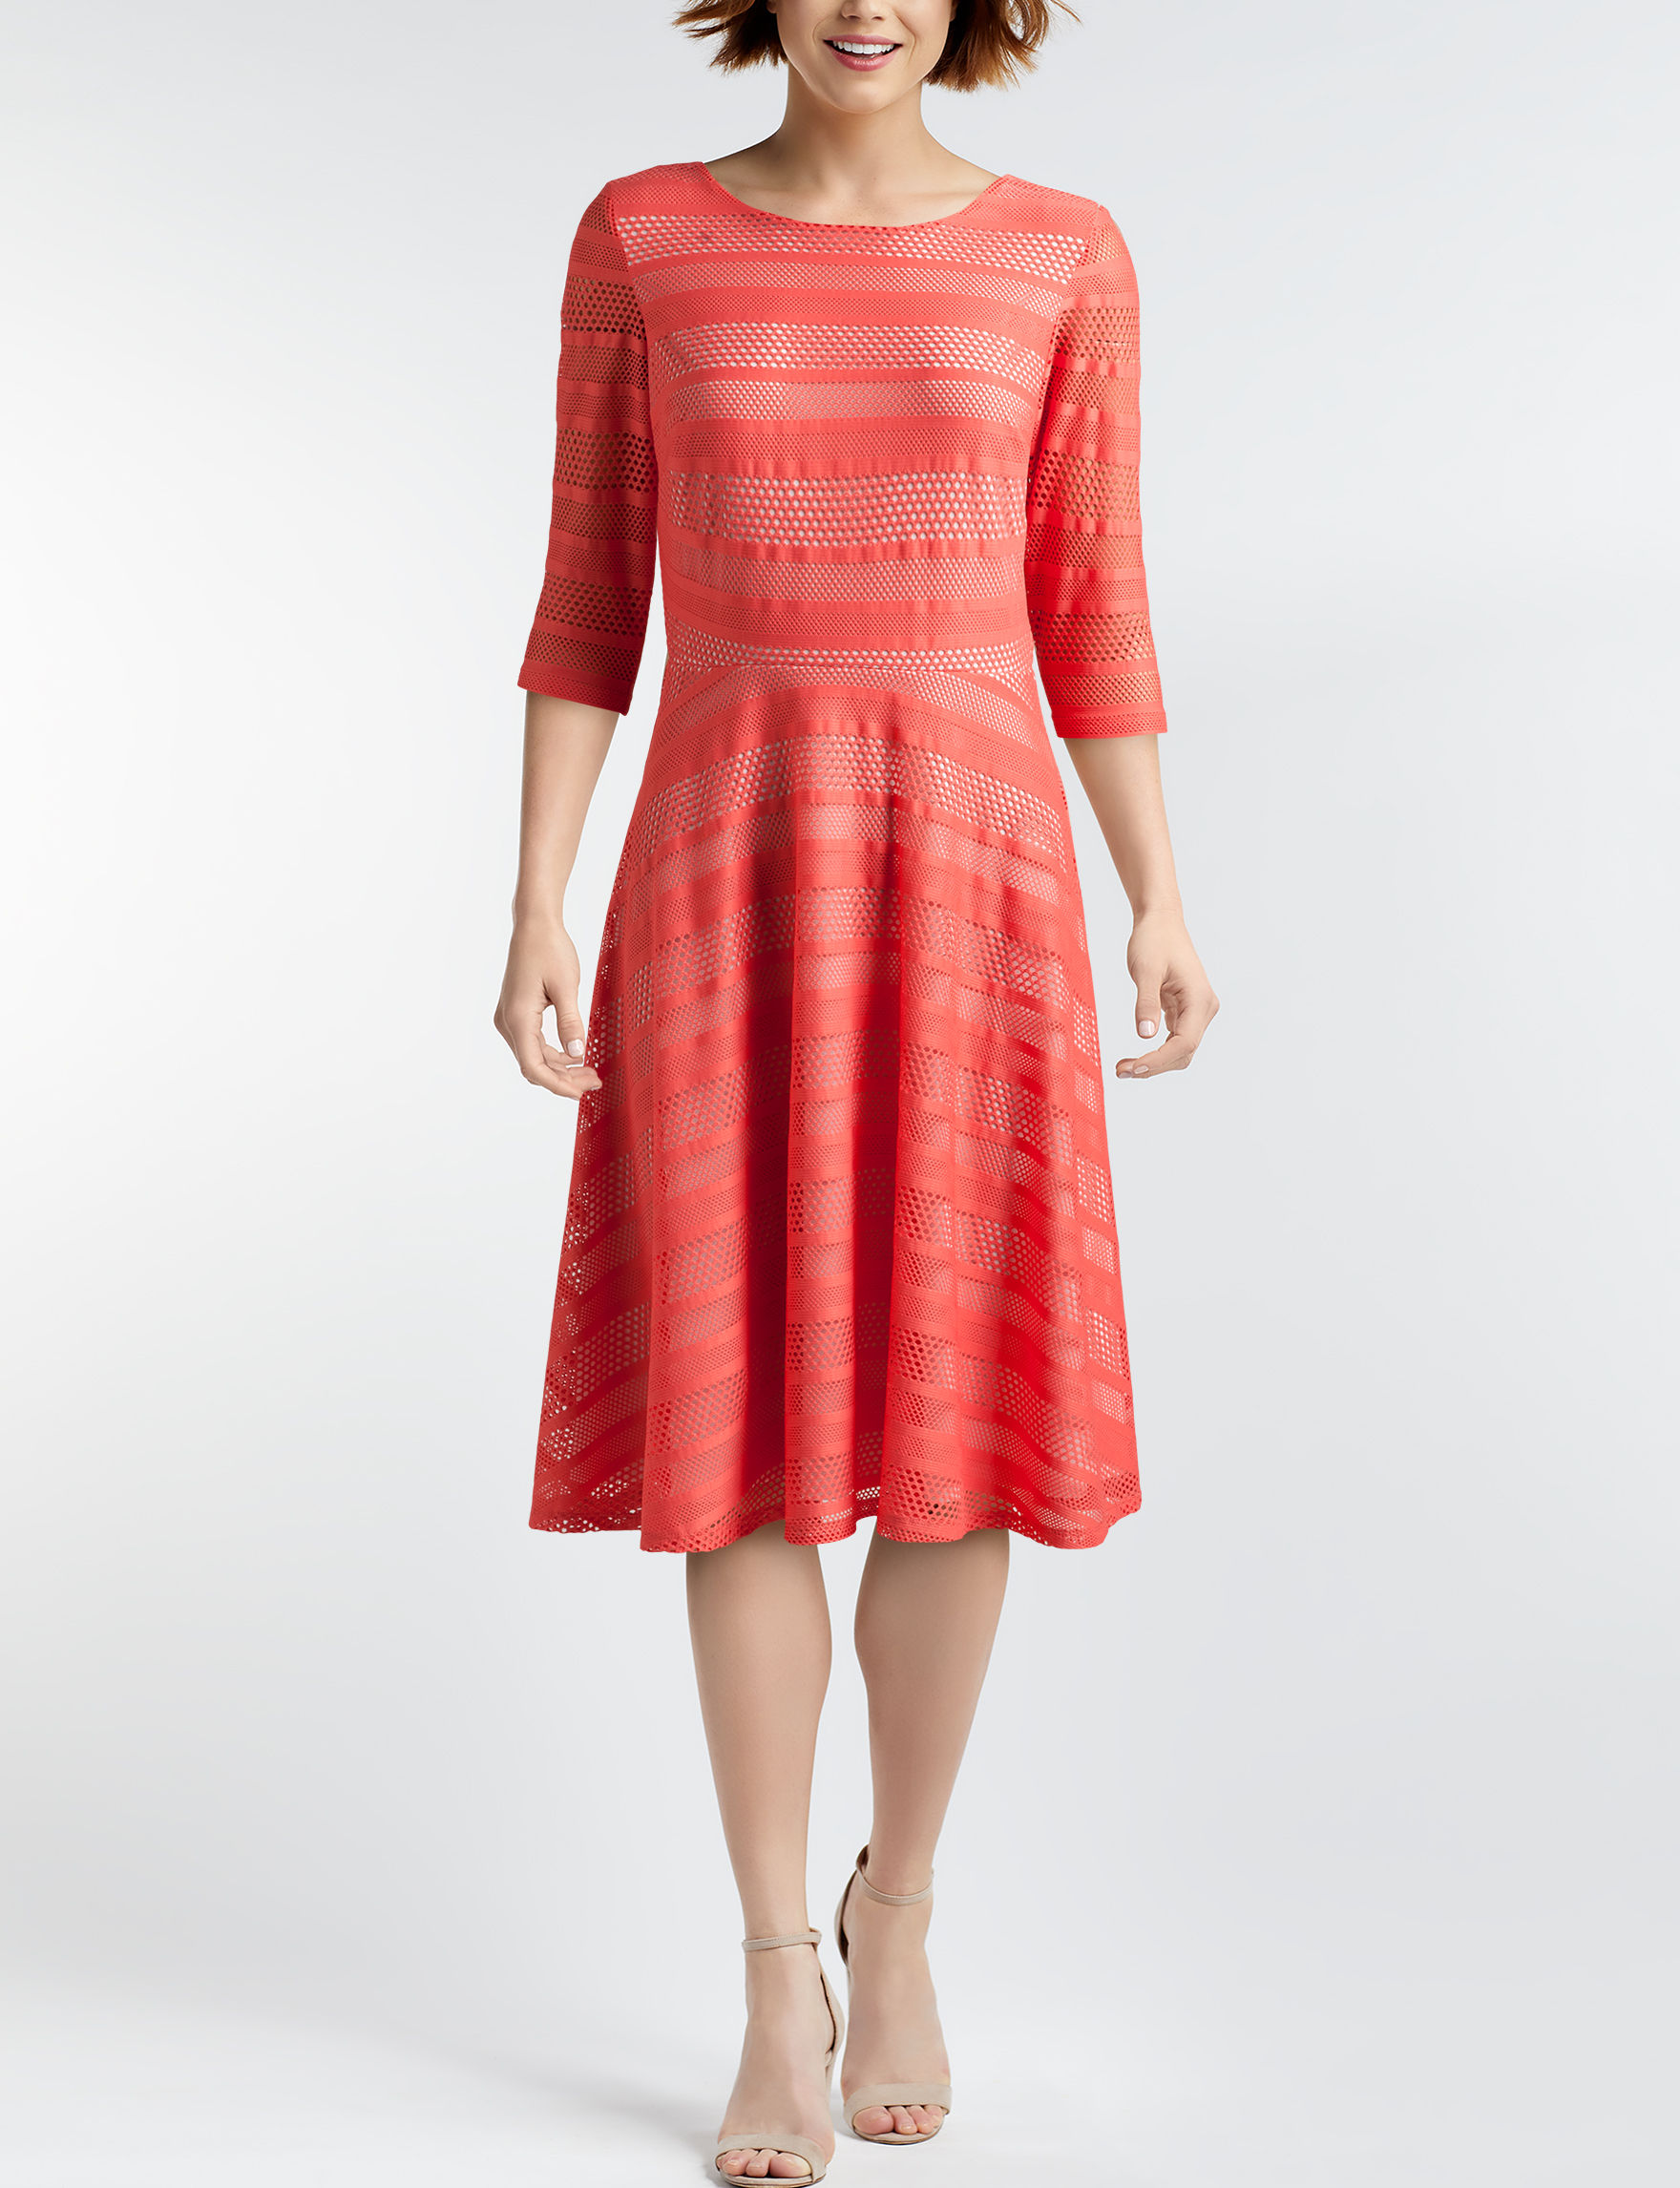 Sangria Sorbet Everyday & Casual Fit & Flare Dresses